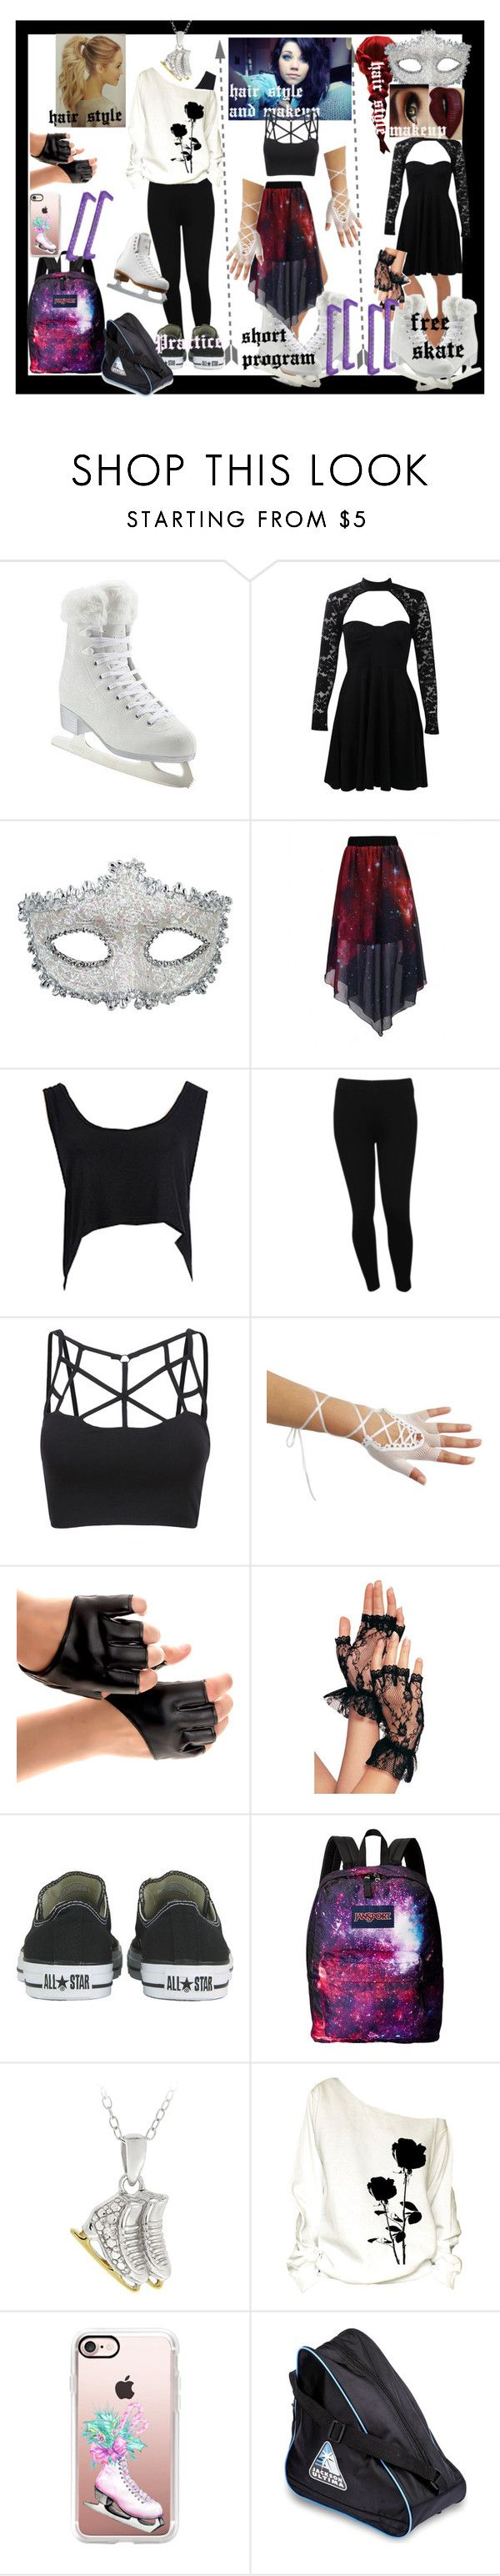 """""""Yuri! on ice OC"""" by thin-mint on Polyvore featuring Artistique, Boohoo, Masquerade, M&Co, Converse, JanSport, DB Designs, Riedell, Casetify and iceskating"""